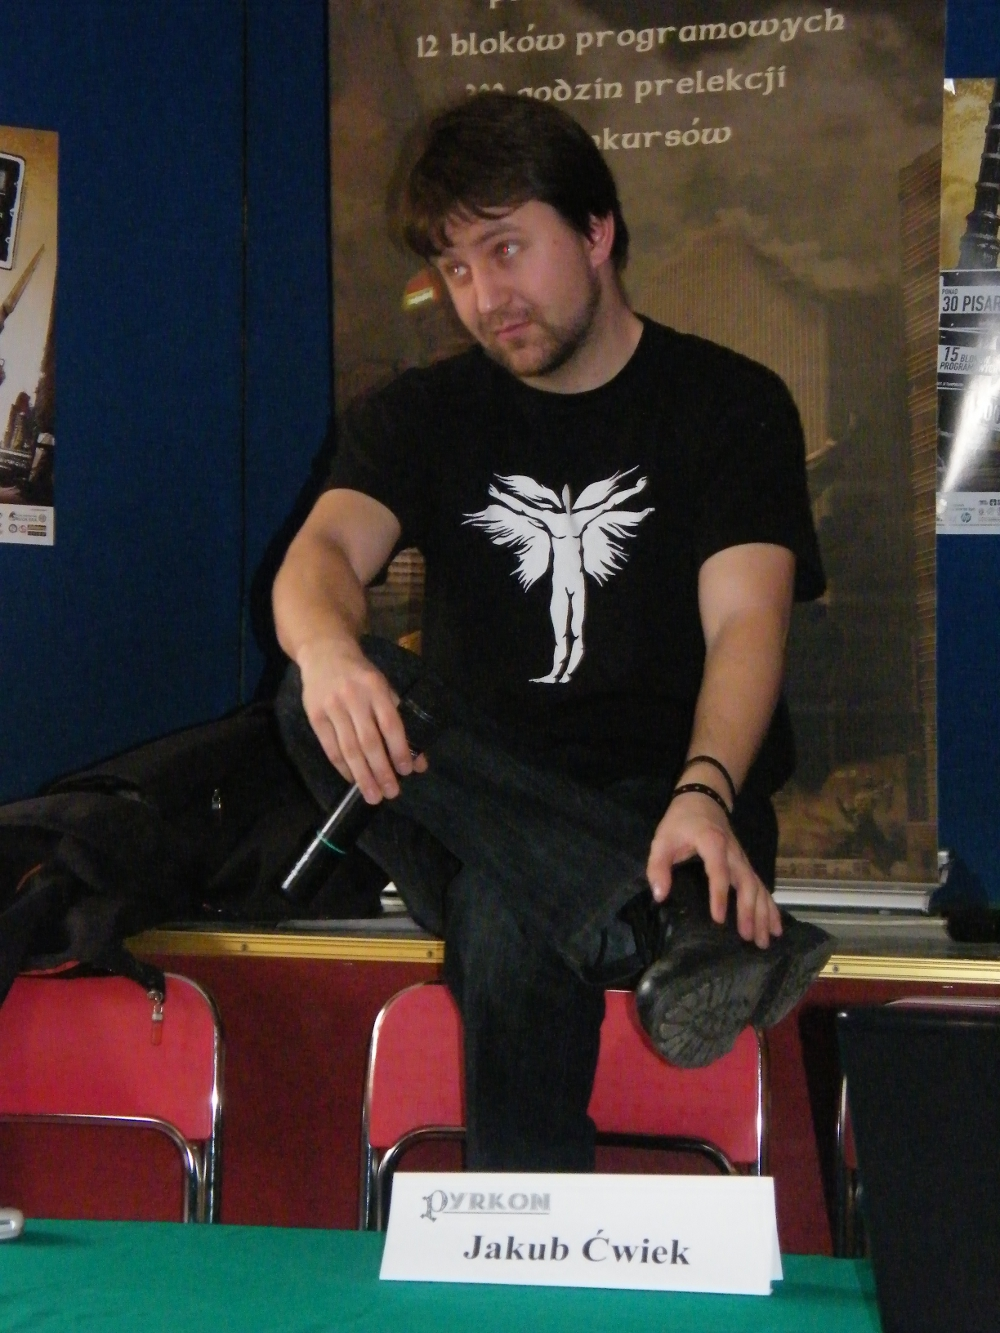 Jakub on [[Pyrkon]] in 2009.